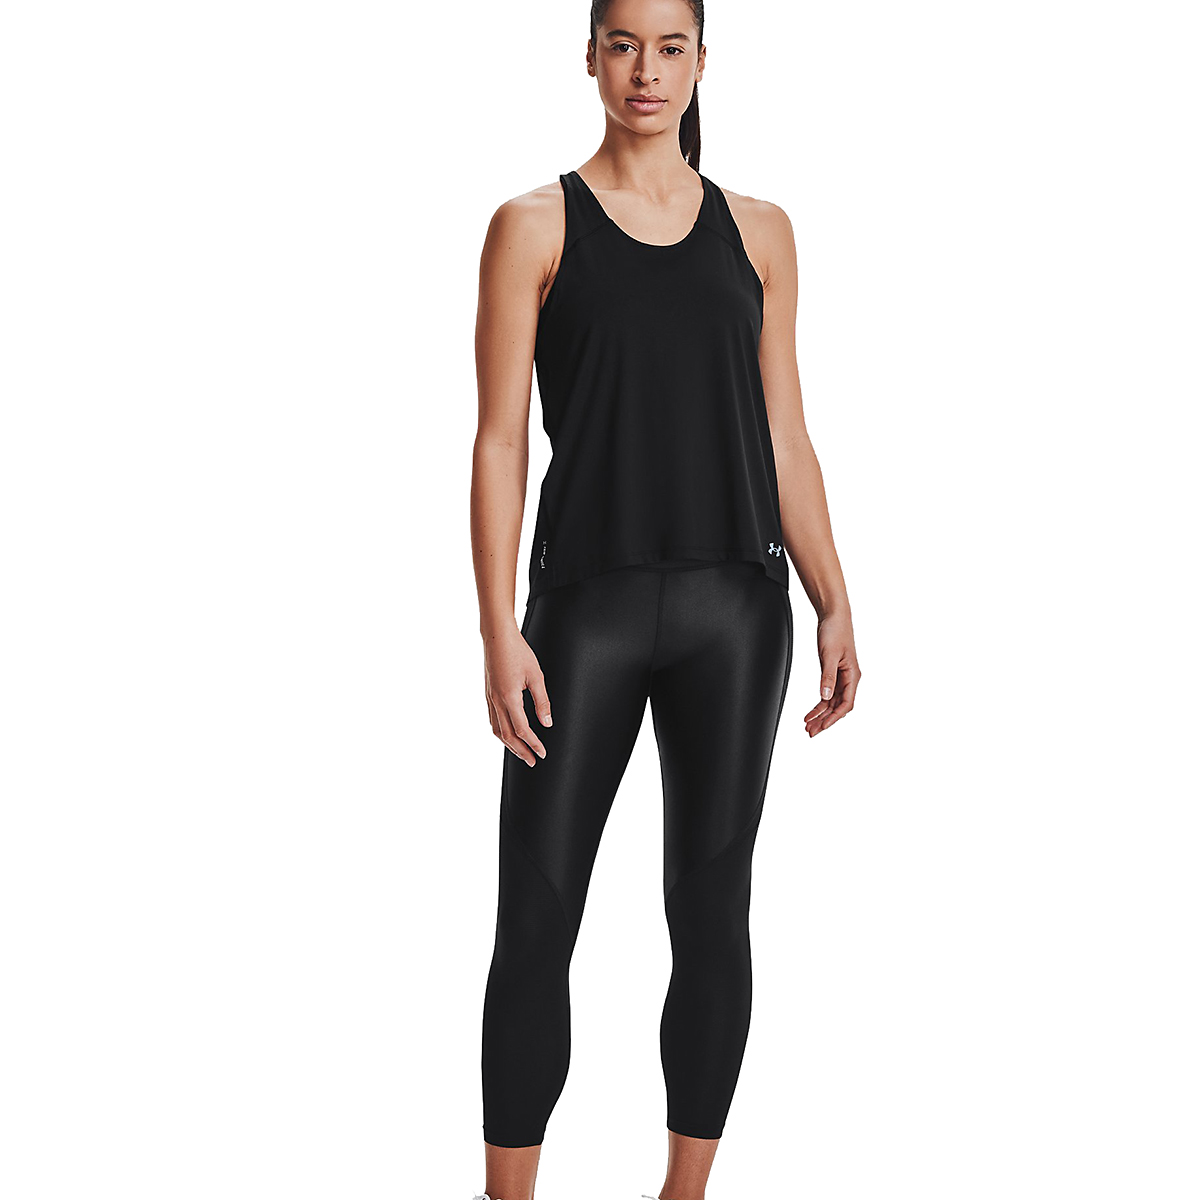 Women's Under Armour Iso-Chill Run 200 Tank - Color: Black - Size: XS, Black, large, image 1